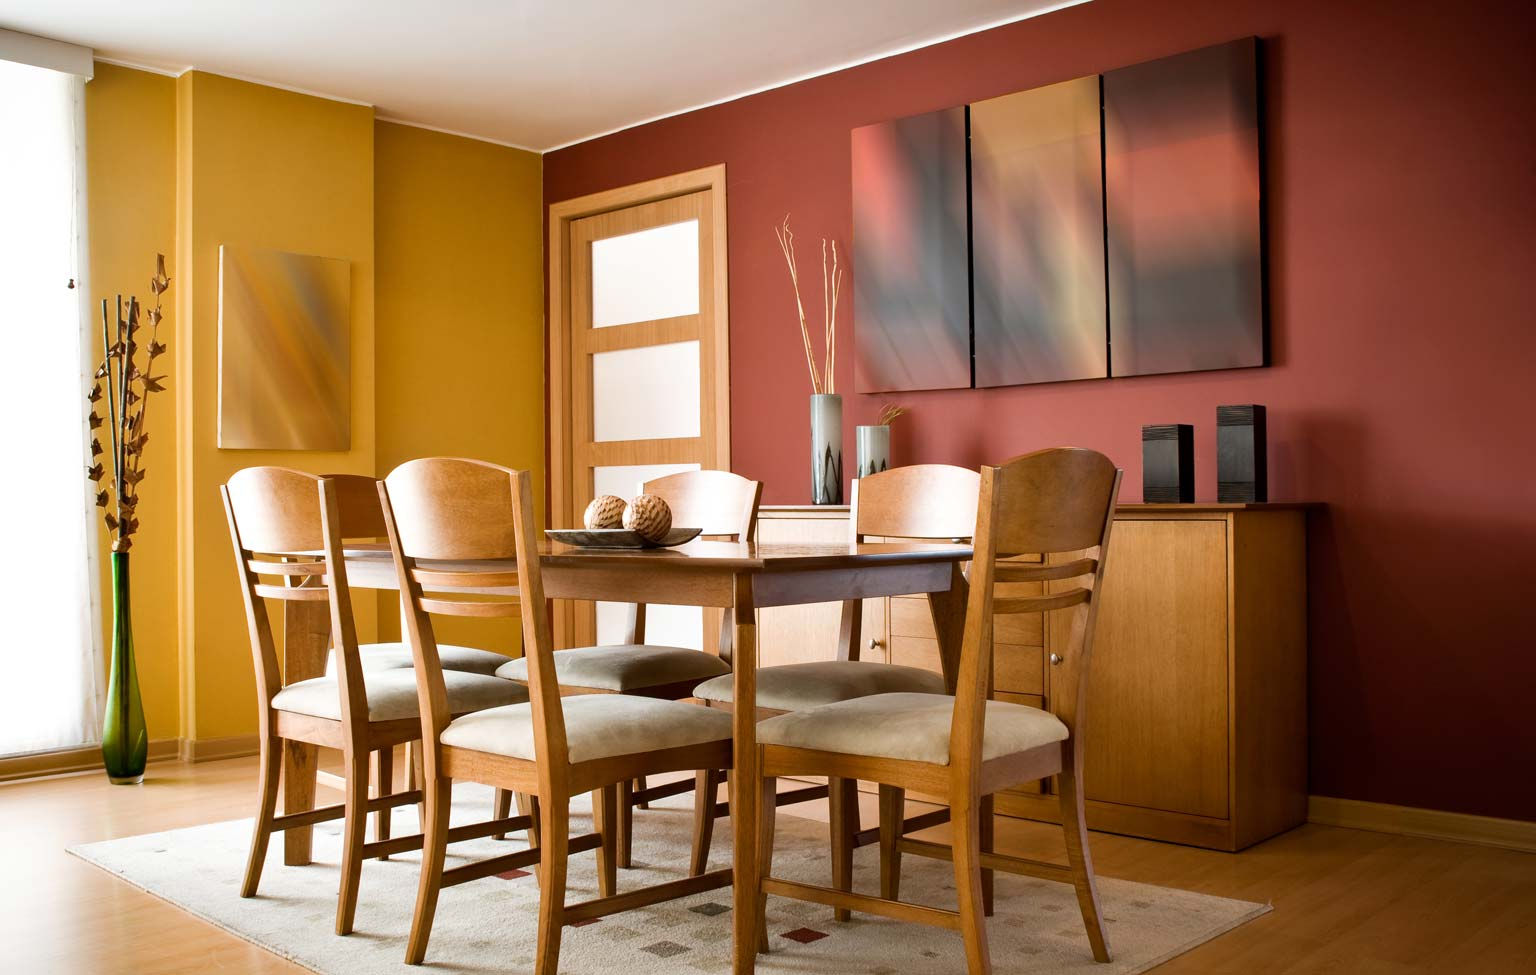 Best Dining Room Paint Color Ideas and Inspiration Gallery & 10 Dining Room Paint Color Ideas and Inspiration Gallery